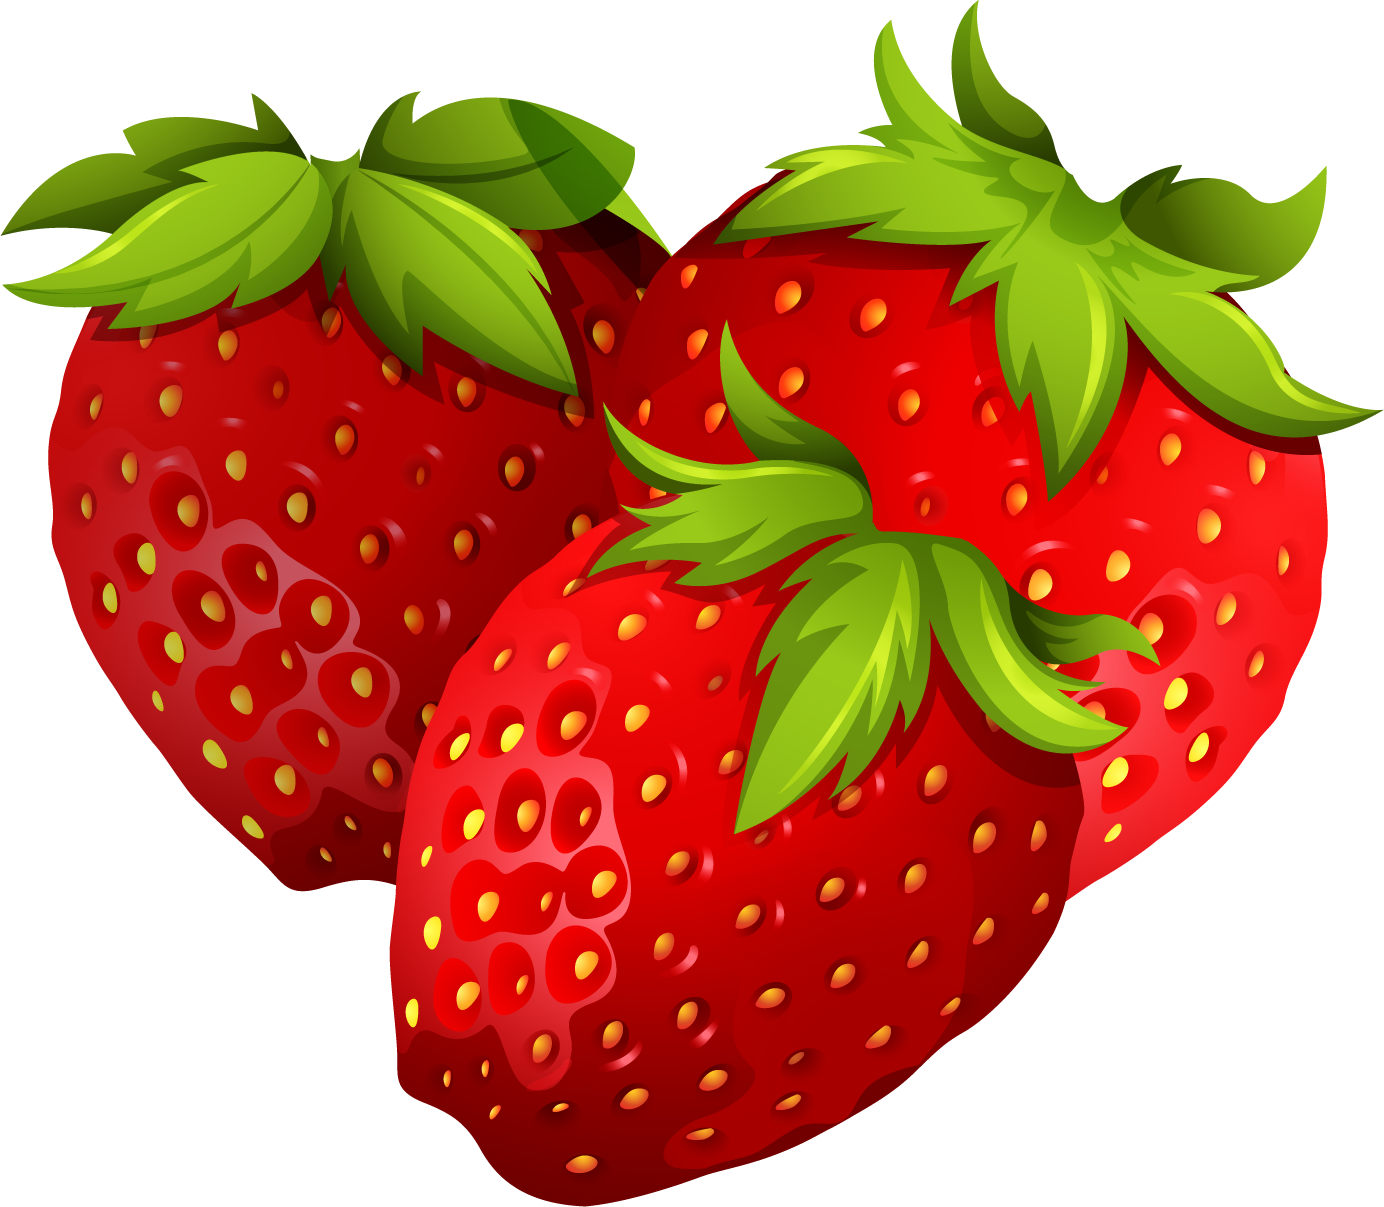 Strawberry png transparent free. Strawberries clipart draw